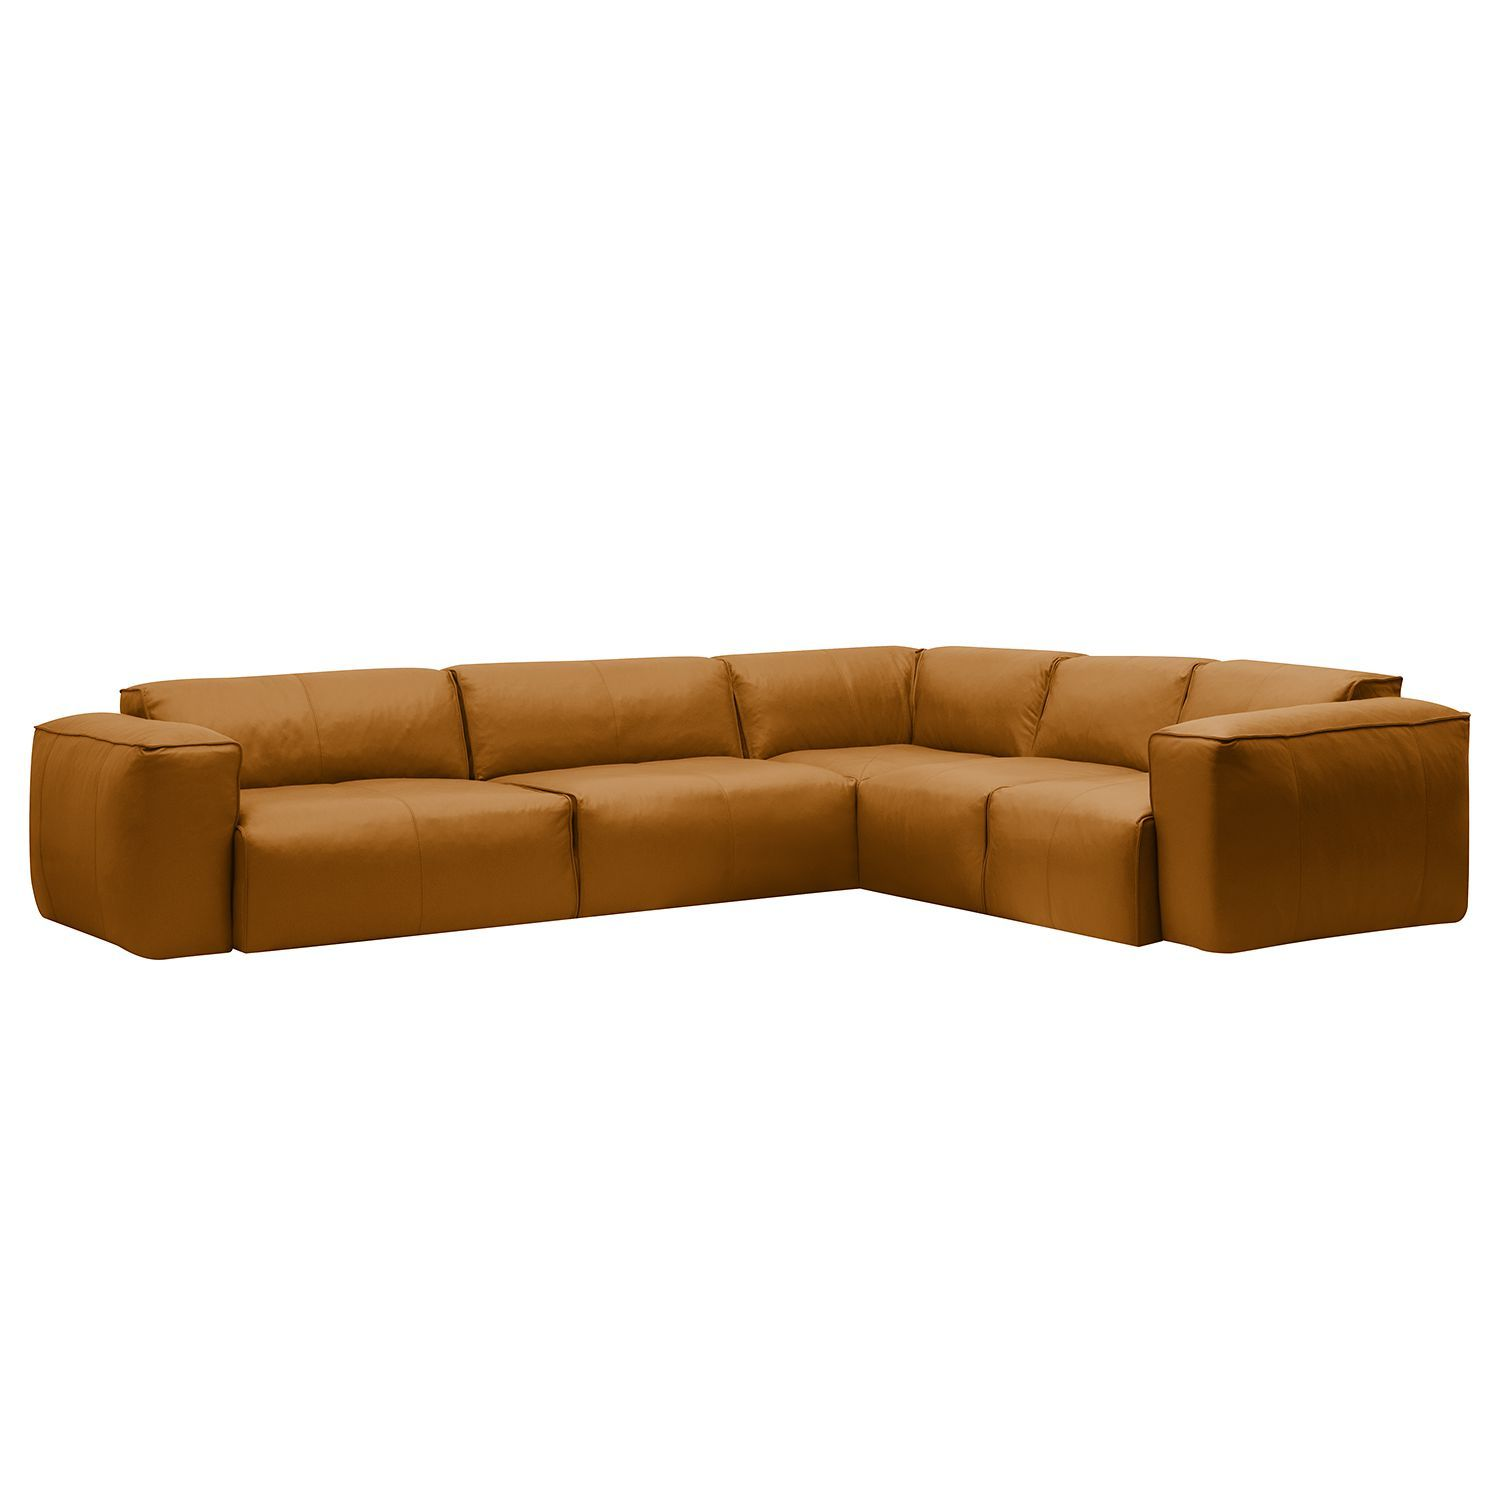 Big Ecksofa Ledersofa Cognac Latest Bean Big Ecksofa Braun Vintage Sofa